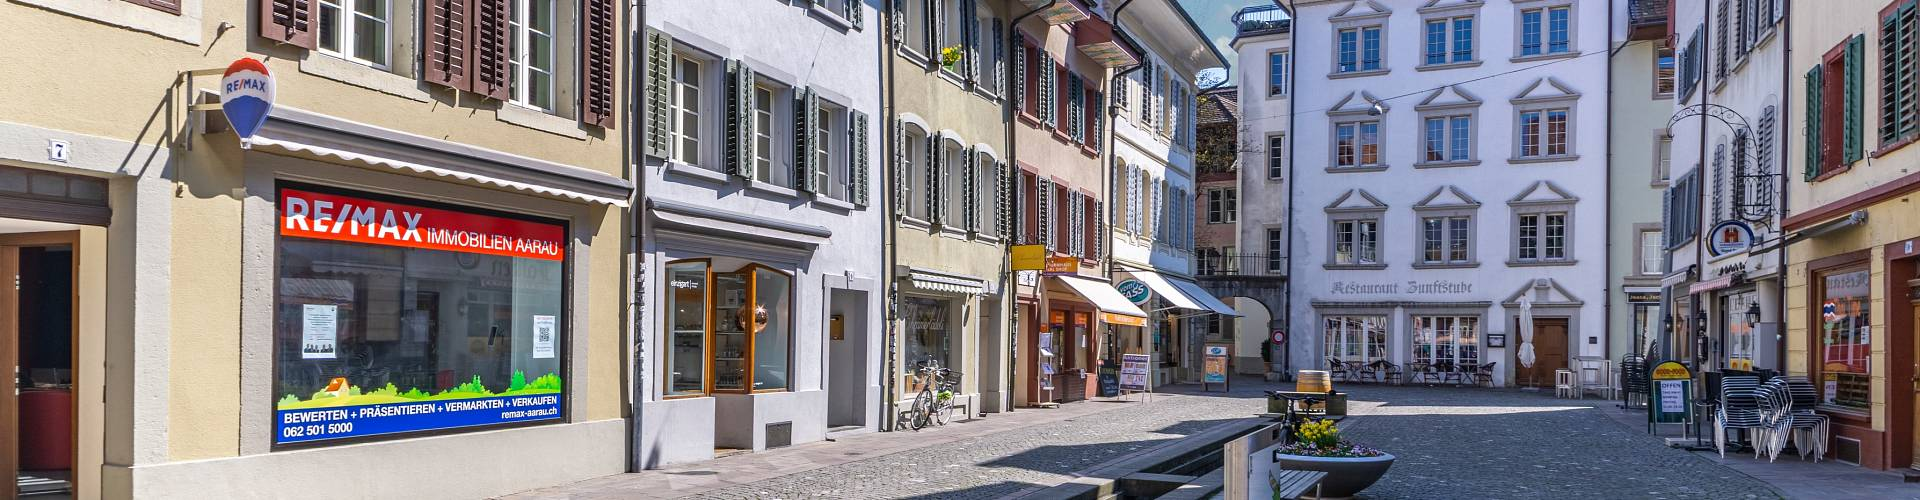 Immobilien - RE/MAX Immobilien in Aarau